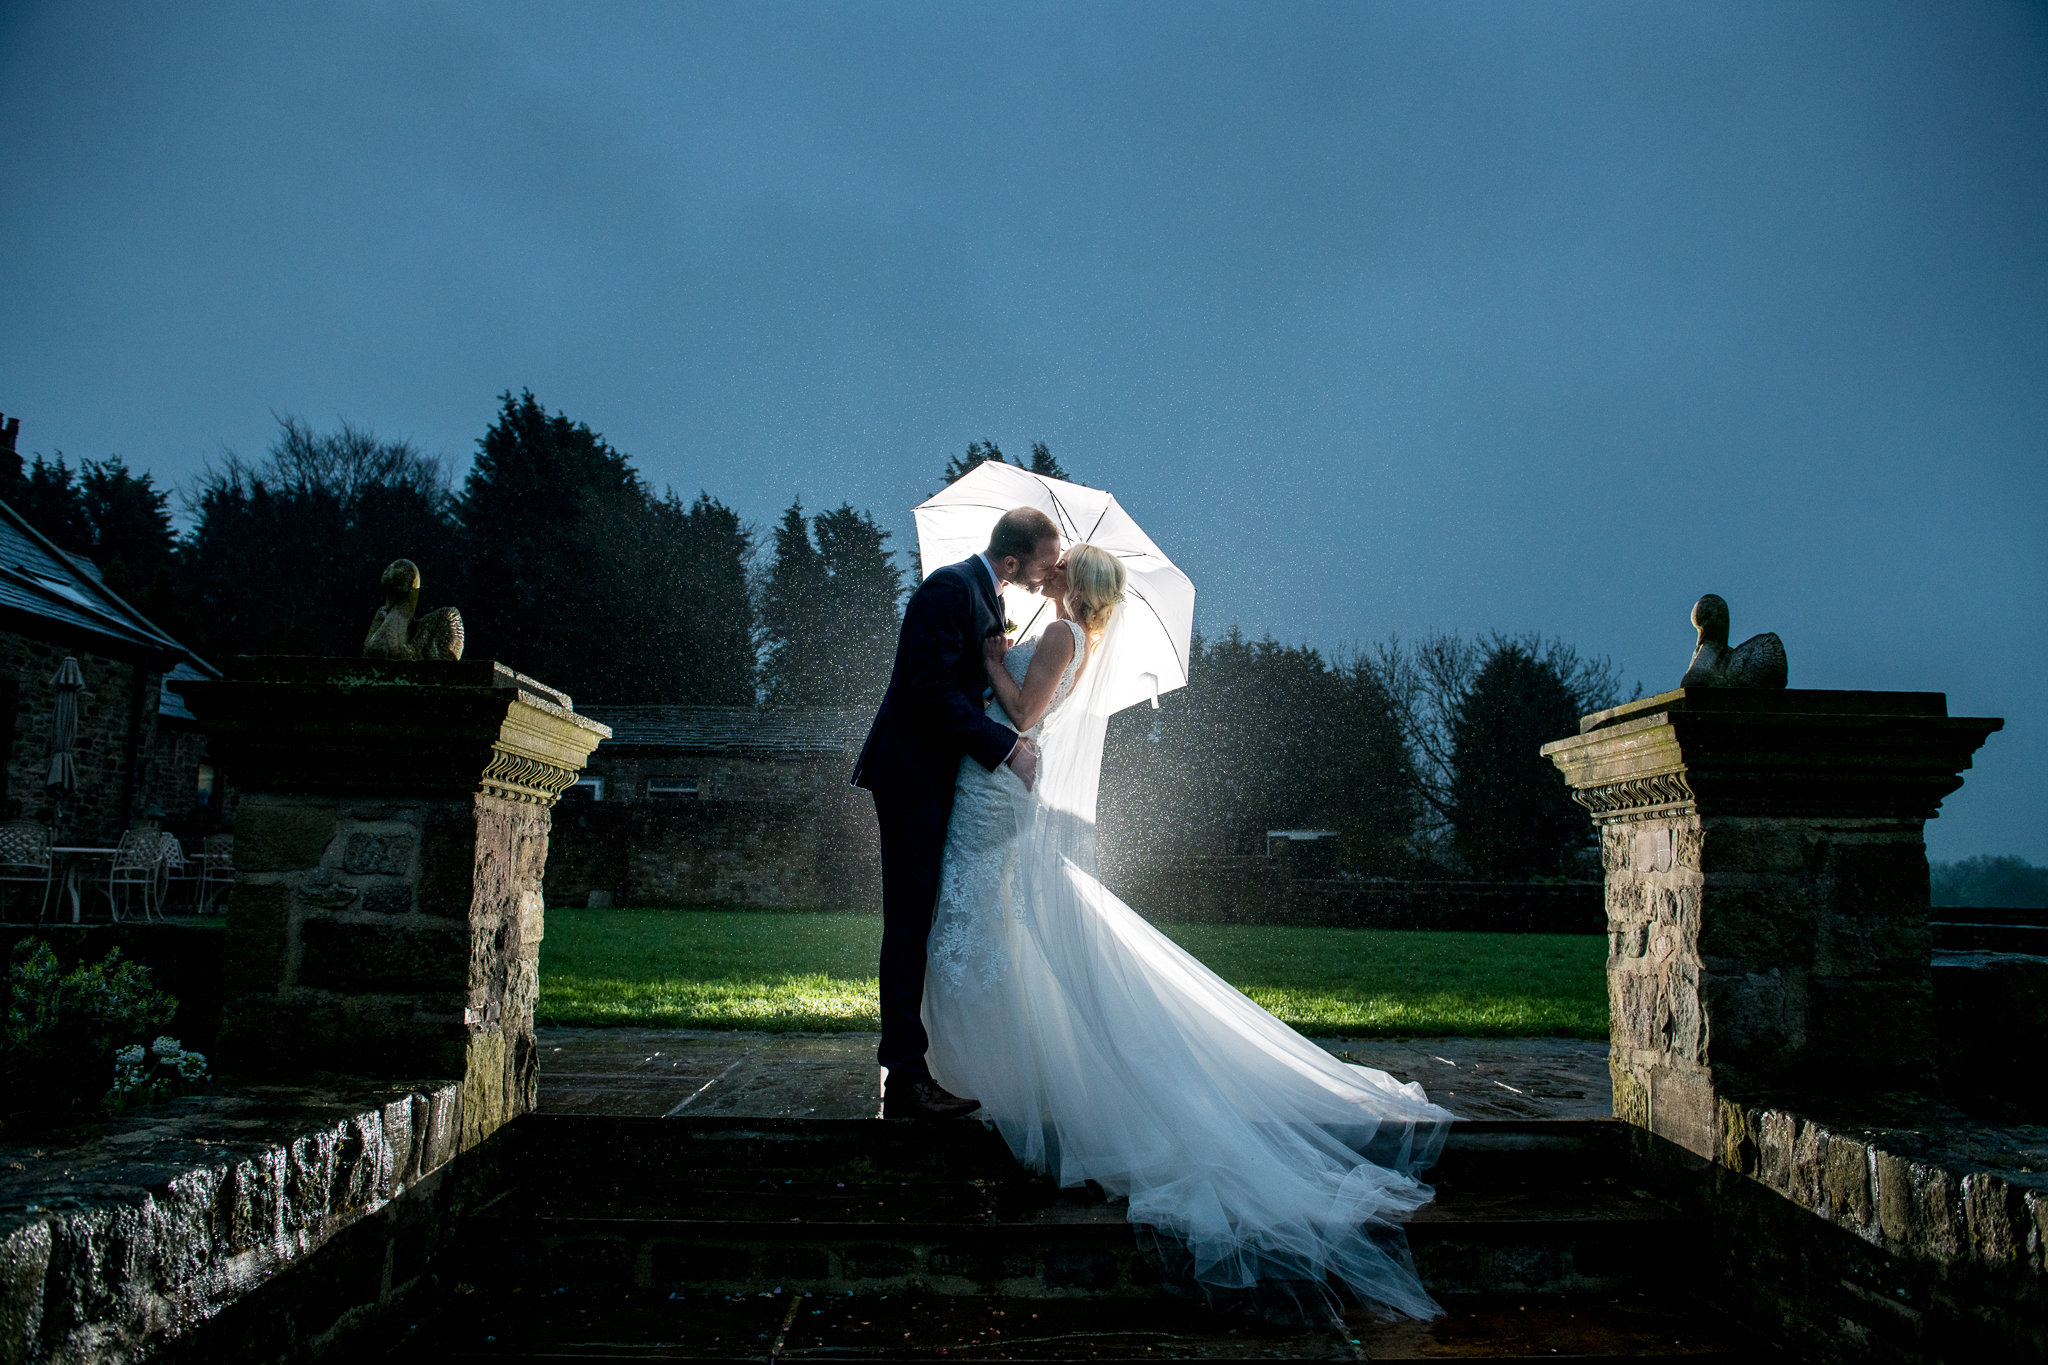 Bride & Groom in Rain